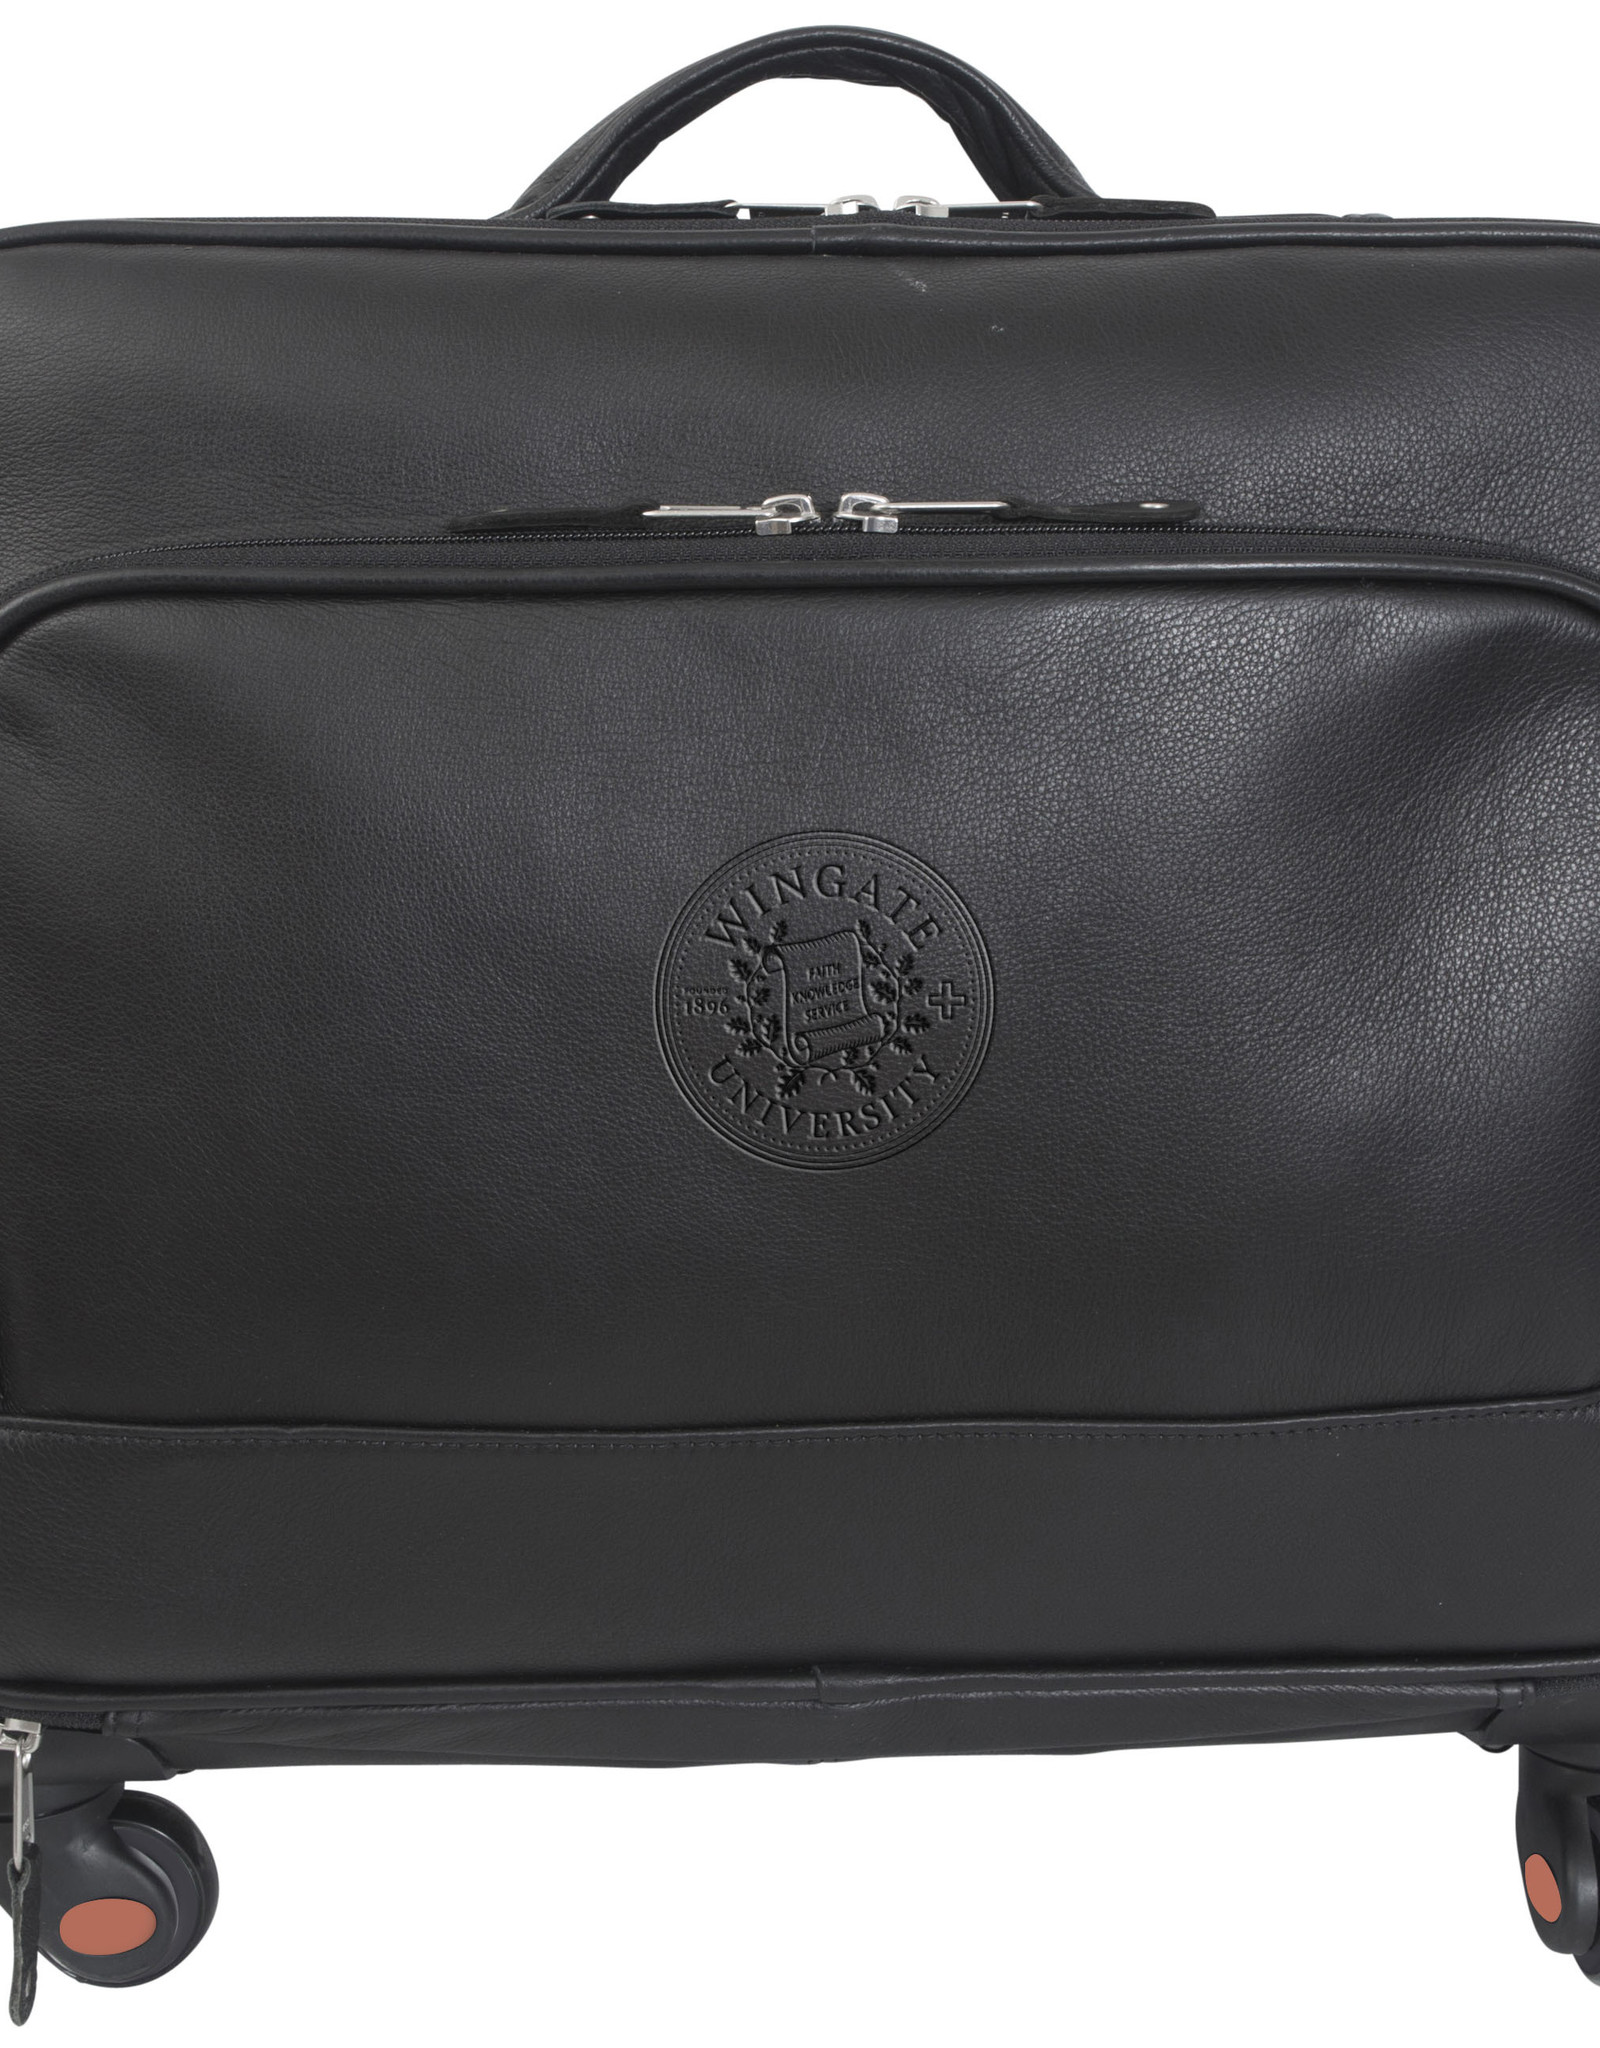 Carlin Canyon Wheeled Briefcase B173 (ONLINE ONLY)